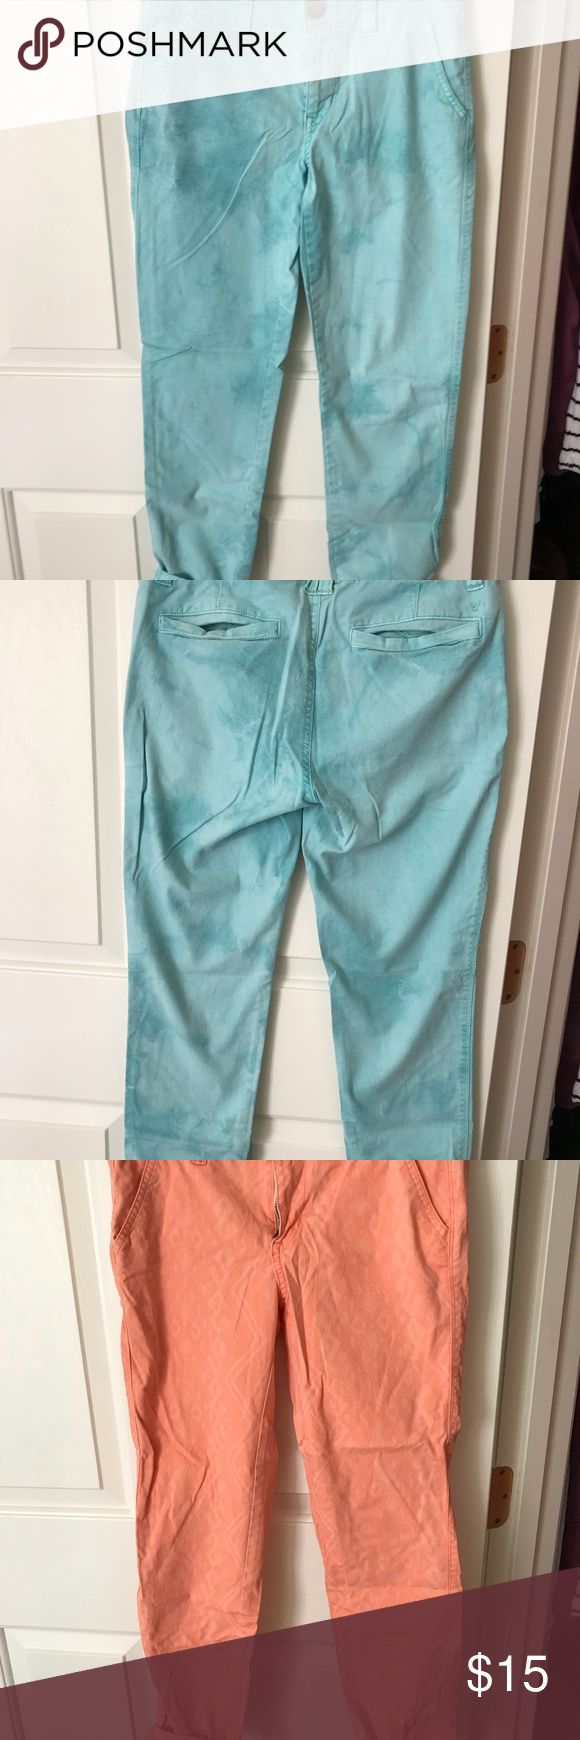 BLUE AND PEACH PRINTED KHAKI CAPRIS PERFECT for the spring and summer! Peach pants worn once blue pants new American Eagle Outfitters Pants Capris